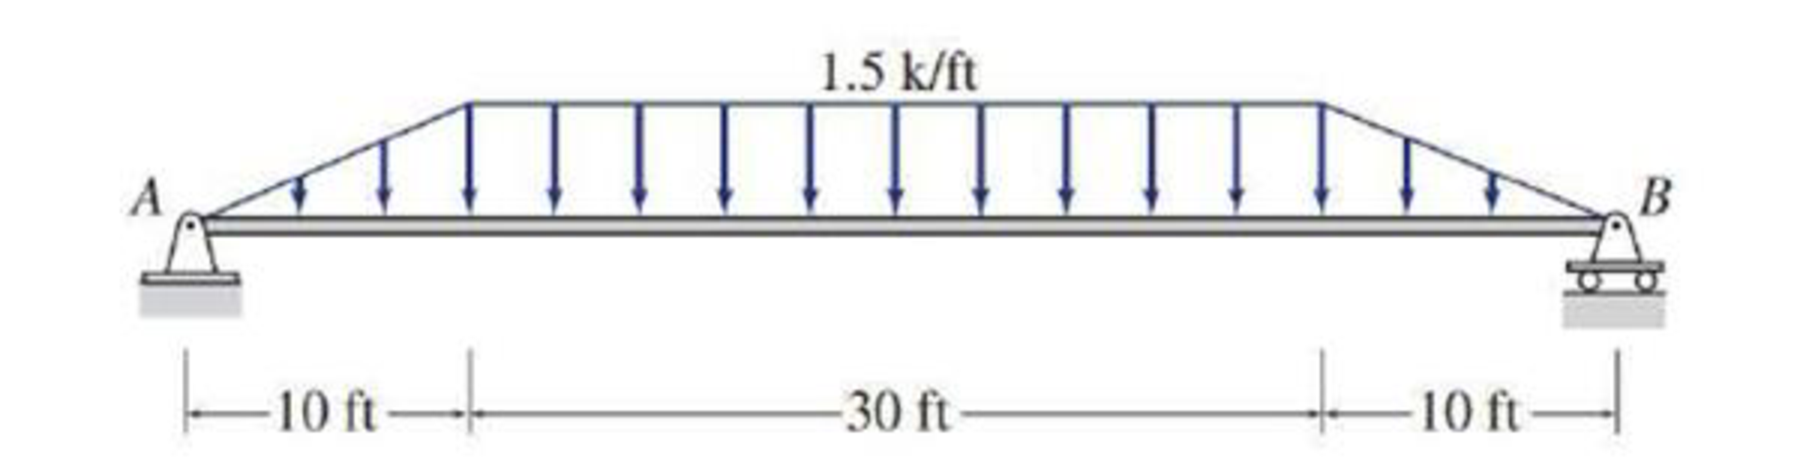 Chapter 3, Problem 8P, Determine the reactions at the supports for the structures shown. FIG.P3.8